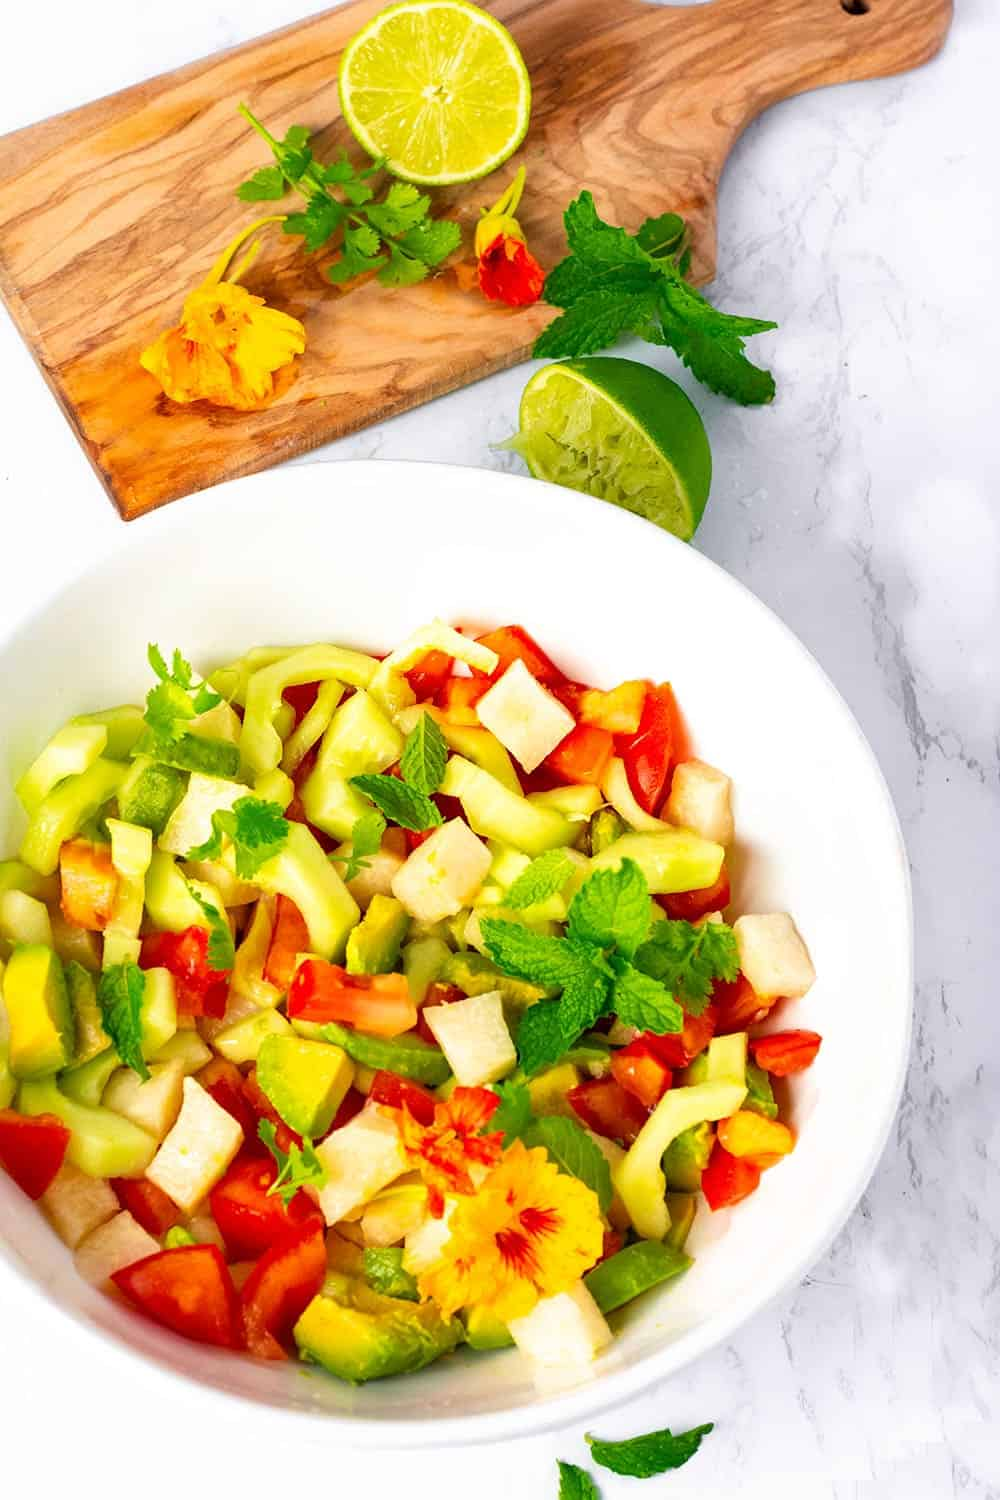 Jicama cucumber, tomato salad in a white bowl overlay